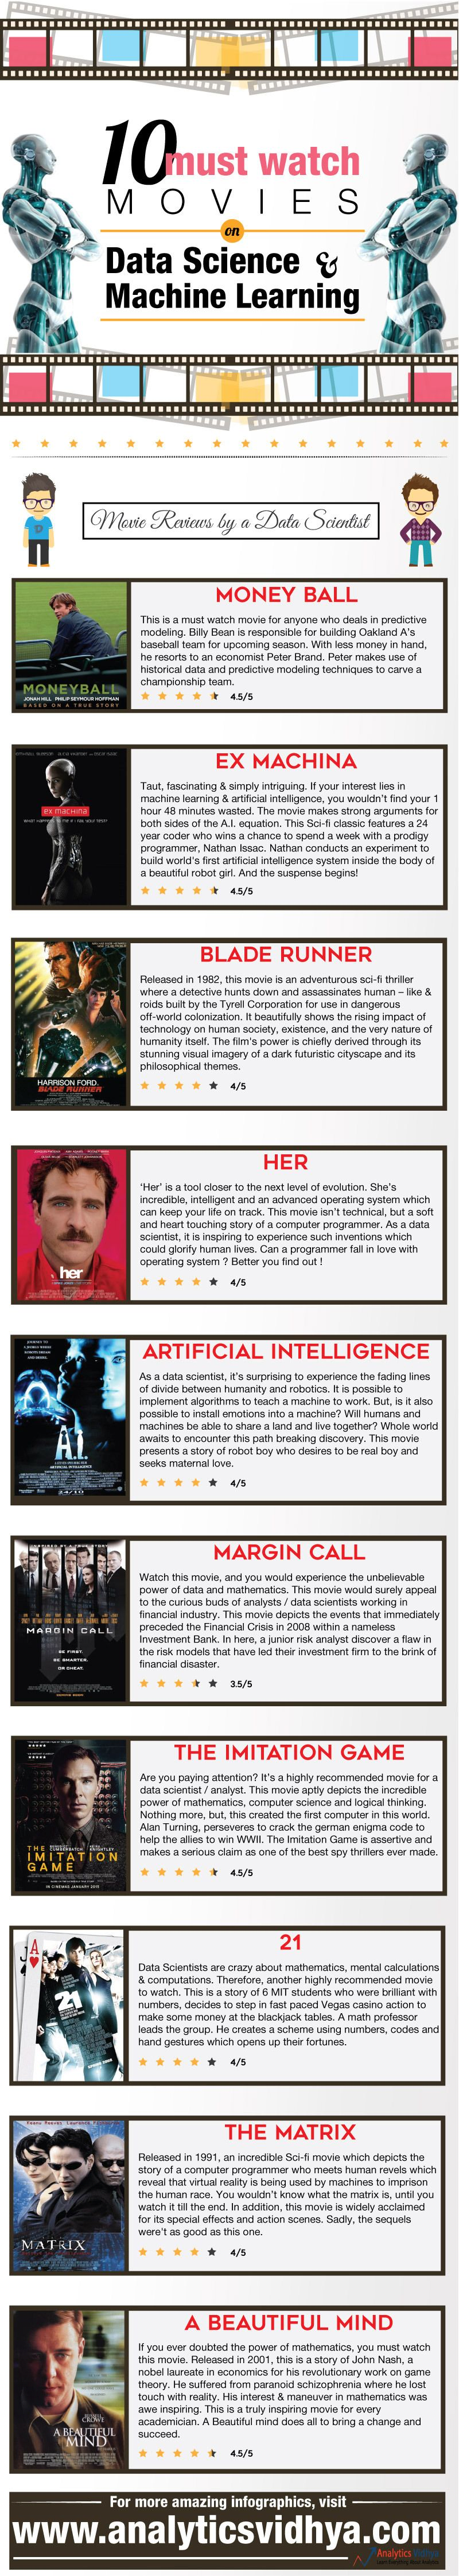 List of Must Watch Movies on Data Science, Machine Learning